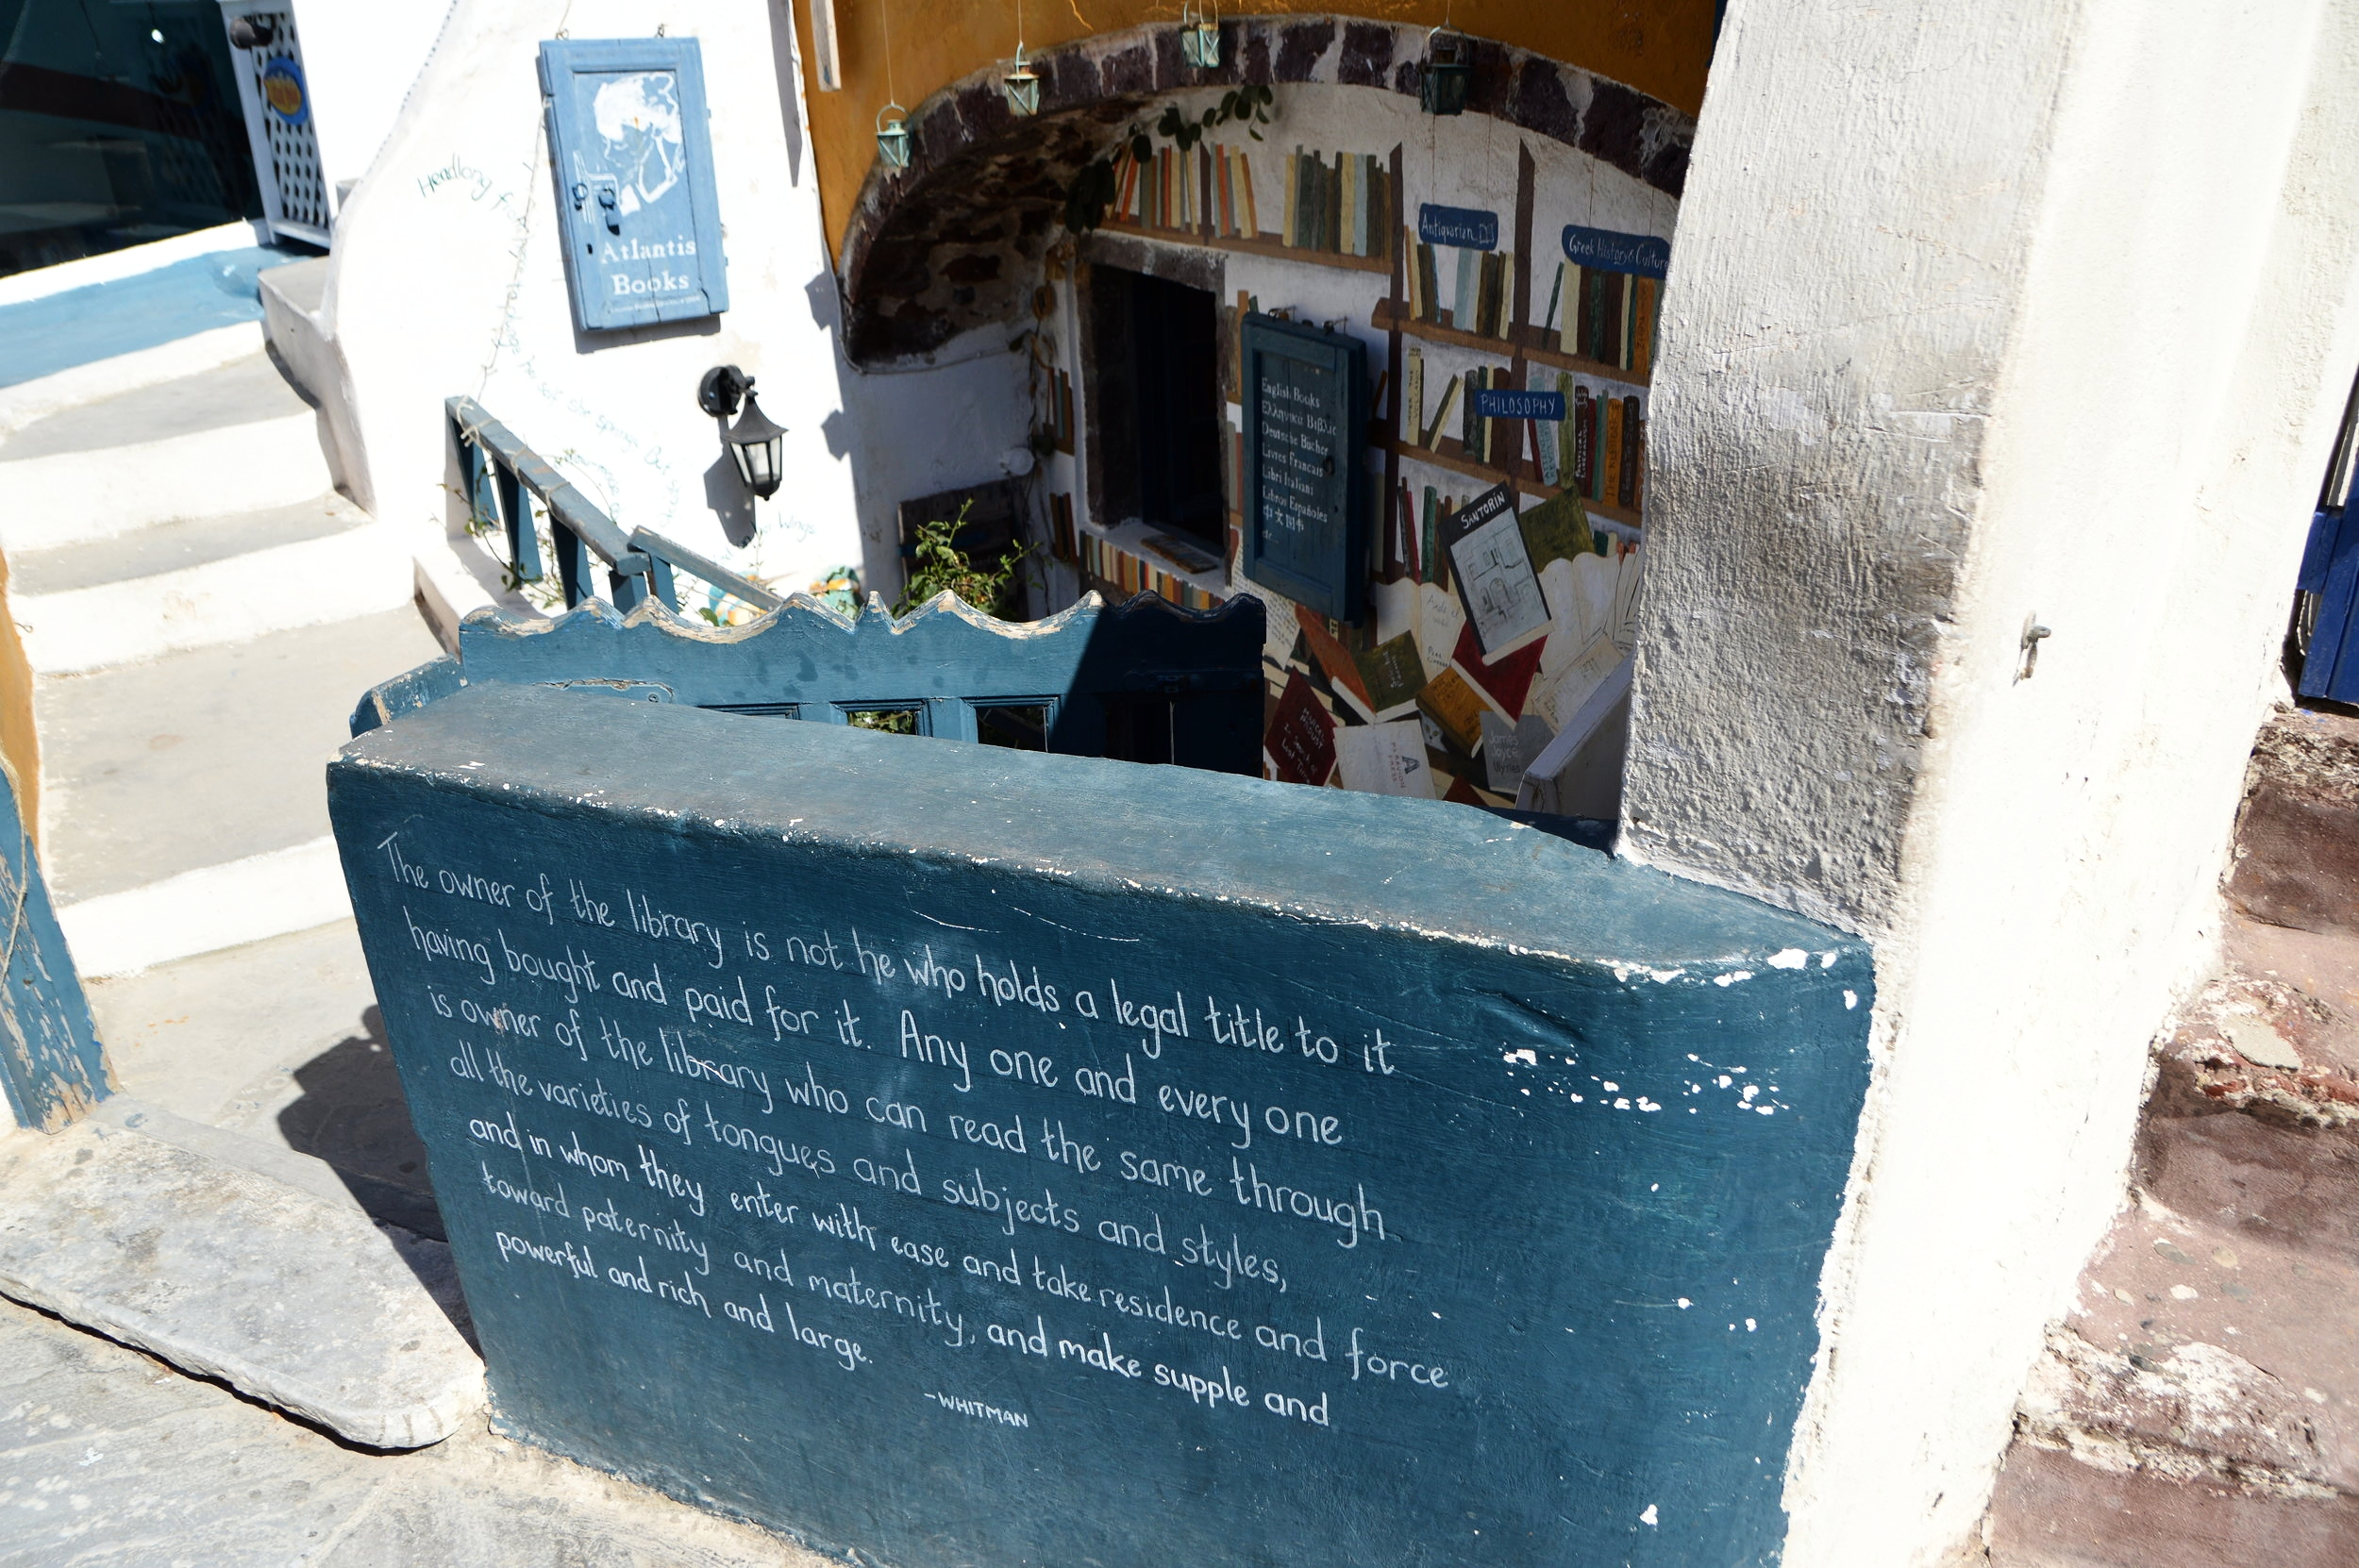 The quotes at this Santorini Bookshop, Atlantis Books, seperated it from the competition.